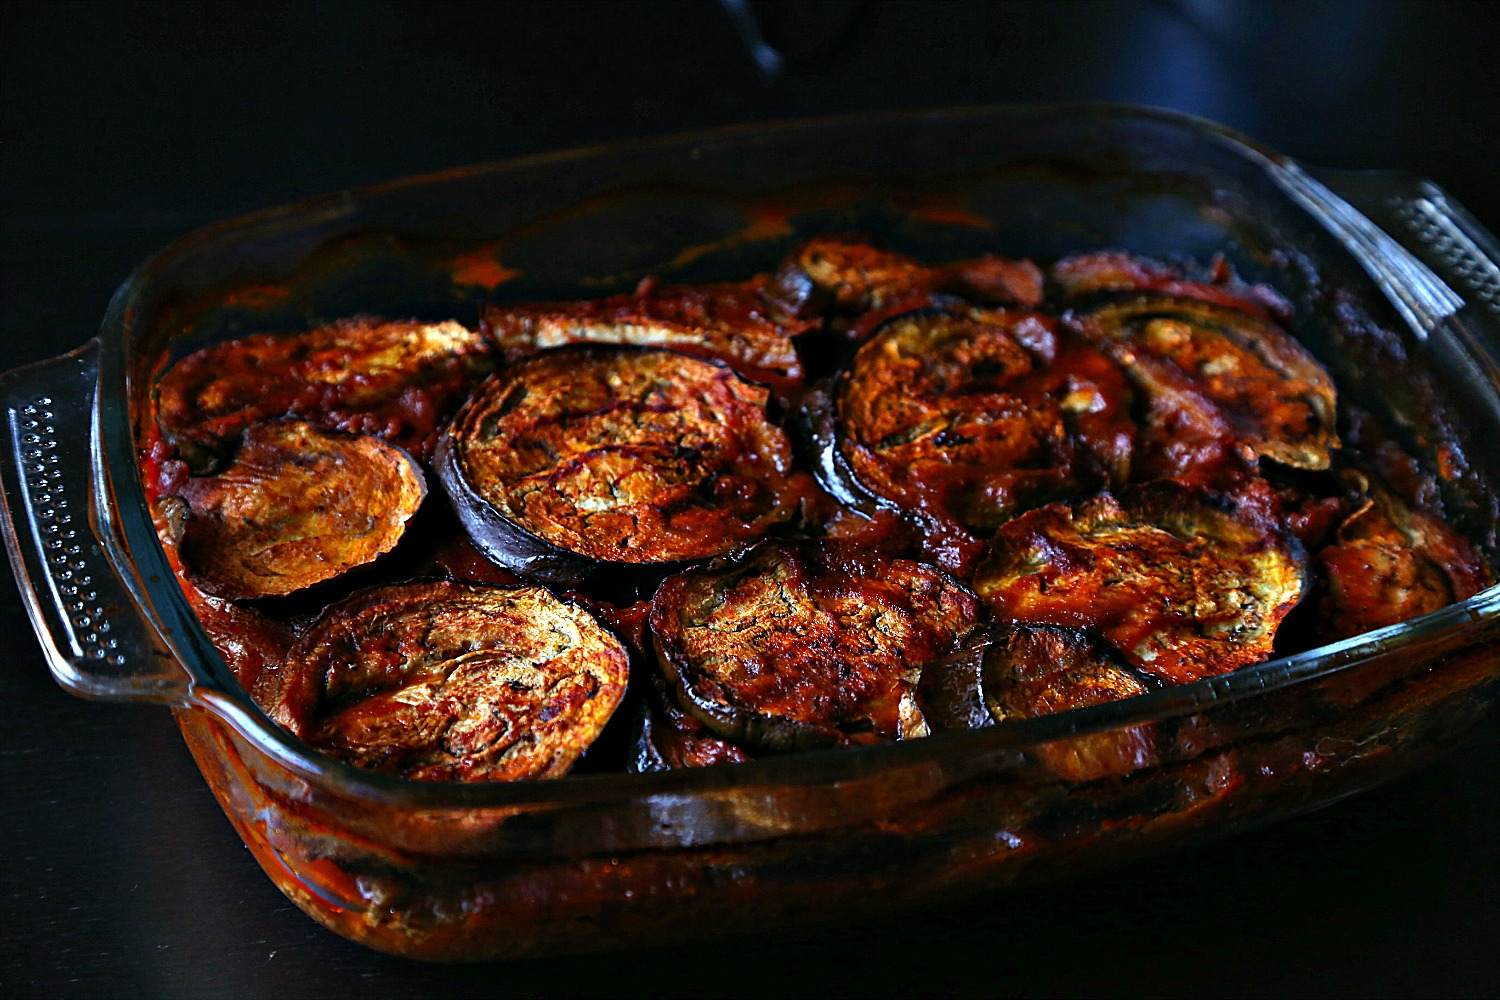 Moussaka eggplant casserole with tomato sauce nutrizonia today i have for you another dish from the arabic cuisine i see that you my readers are loving arabic recipes and i cant blame you forumfinder Gallery